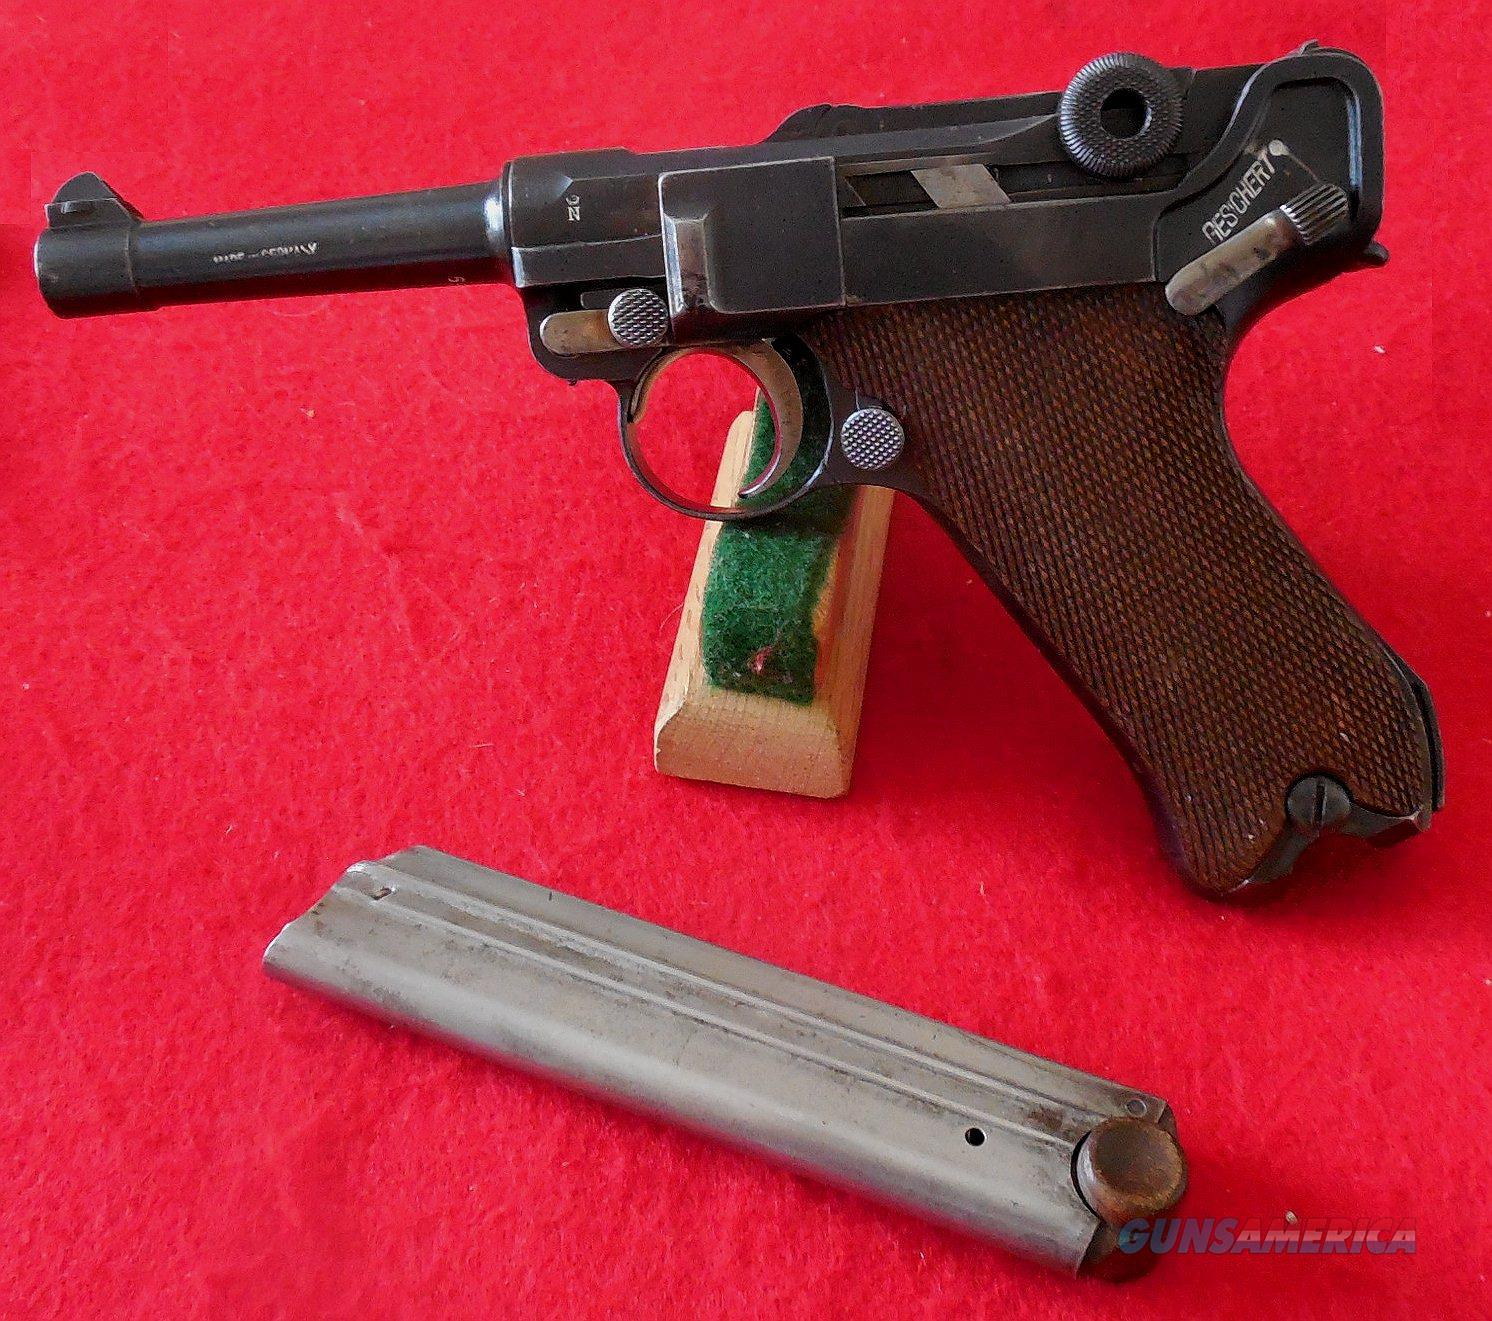 German 1920 Commercial Luger Pistol by DWM